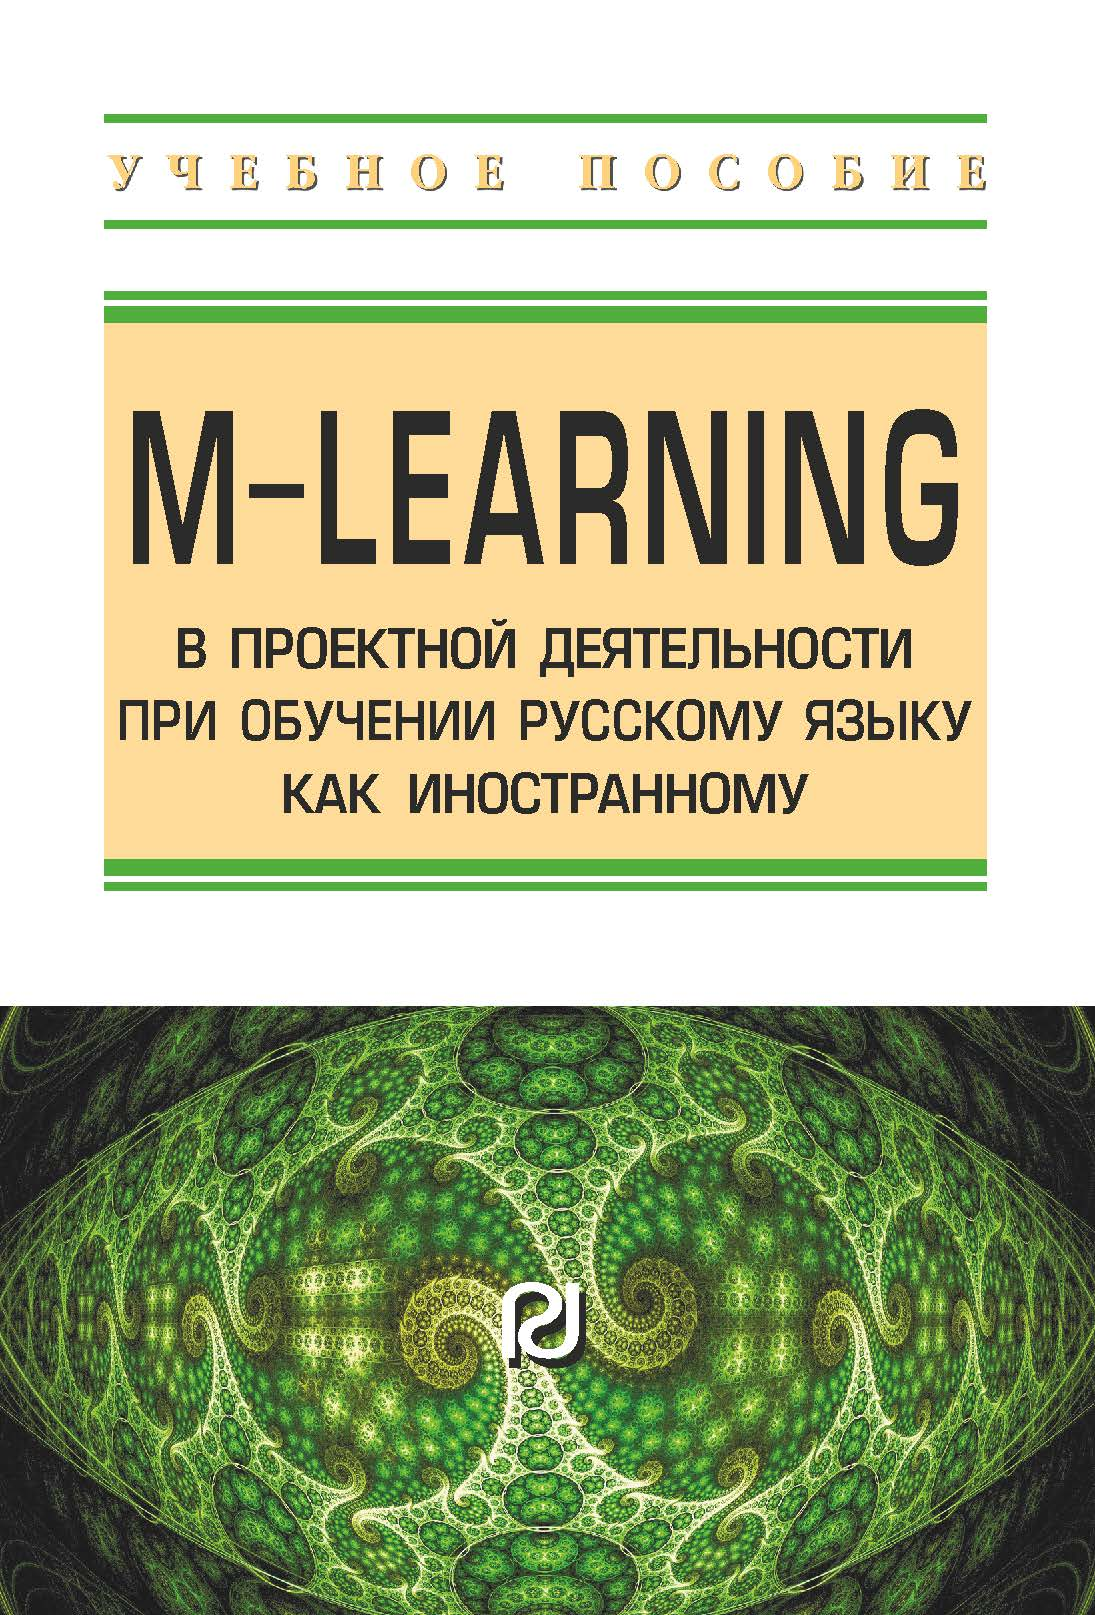 M-learning in project activities when teaching Russian as a foreign language